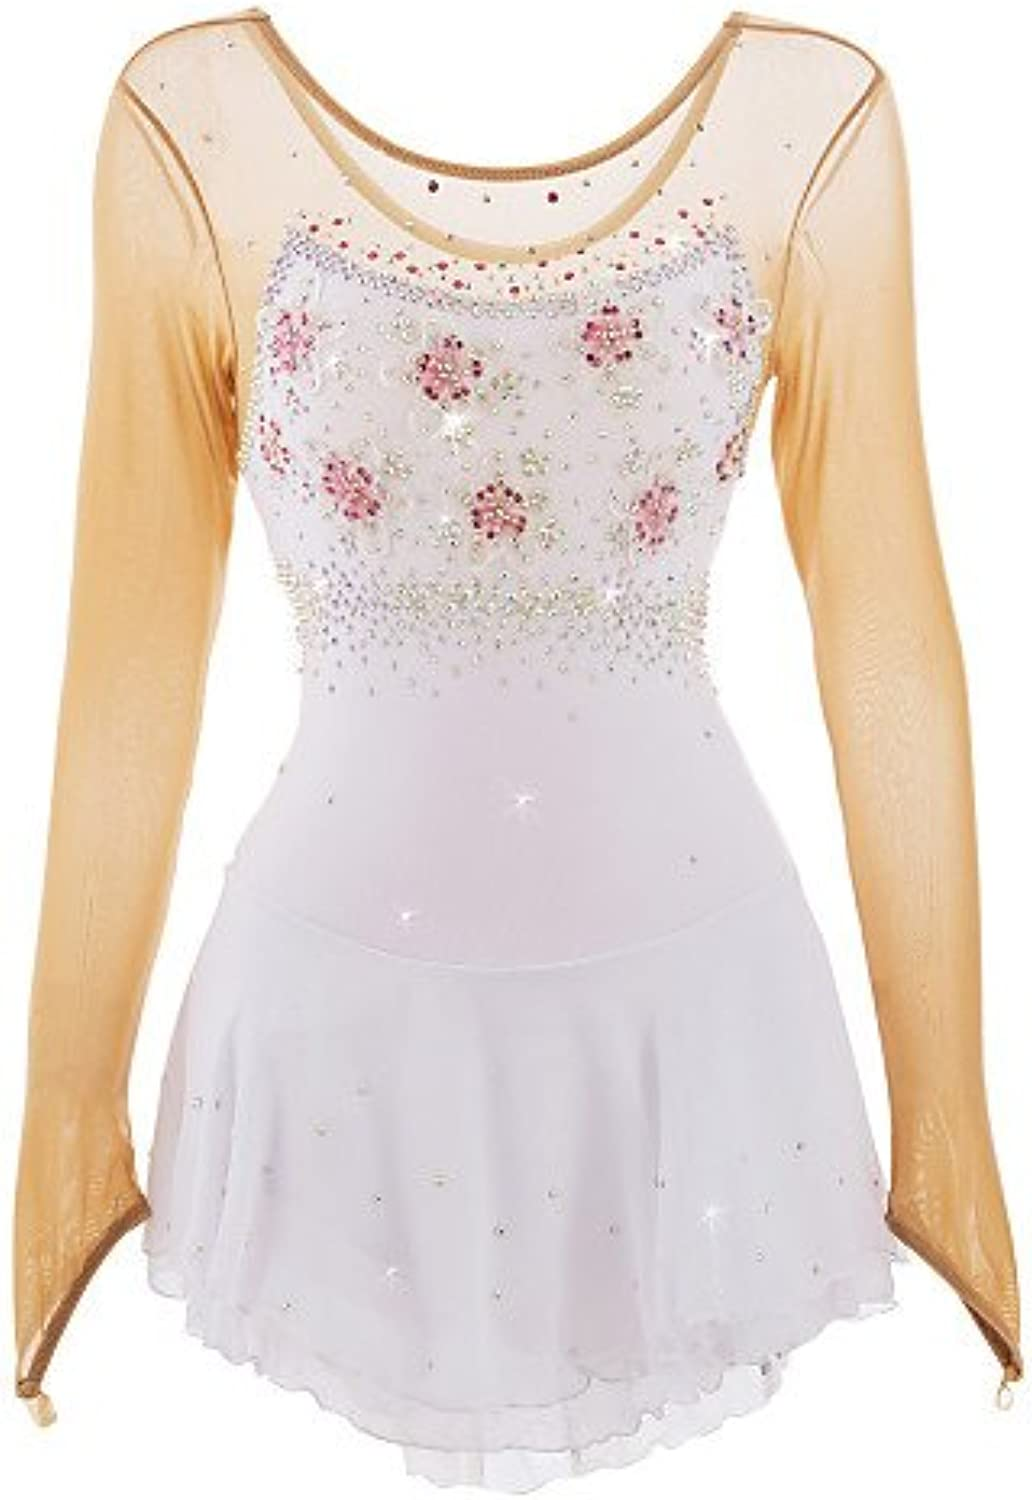 Ice Skating Dress for Girls Women Figure Skating Competition Costume Skating Leotards Crystals Applique Long Sleeved White